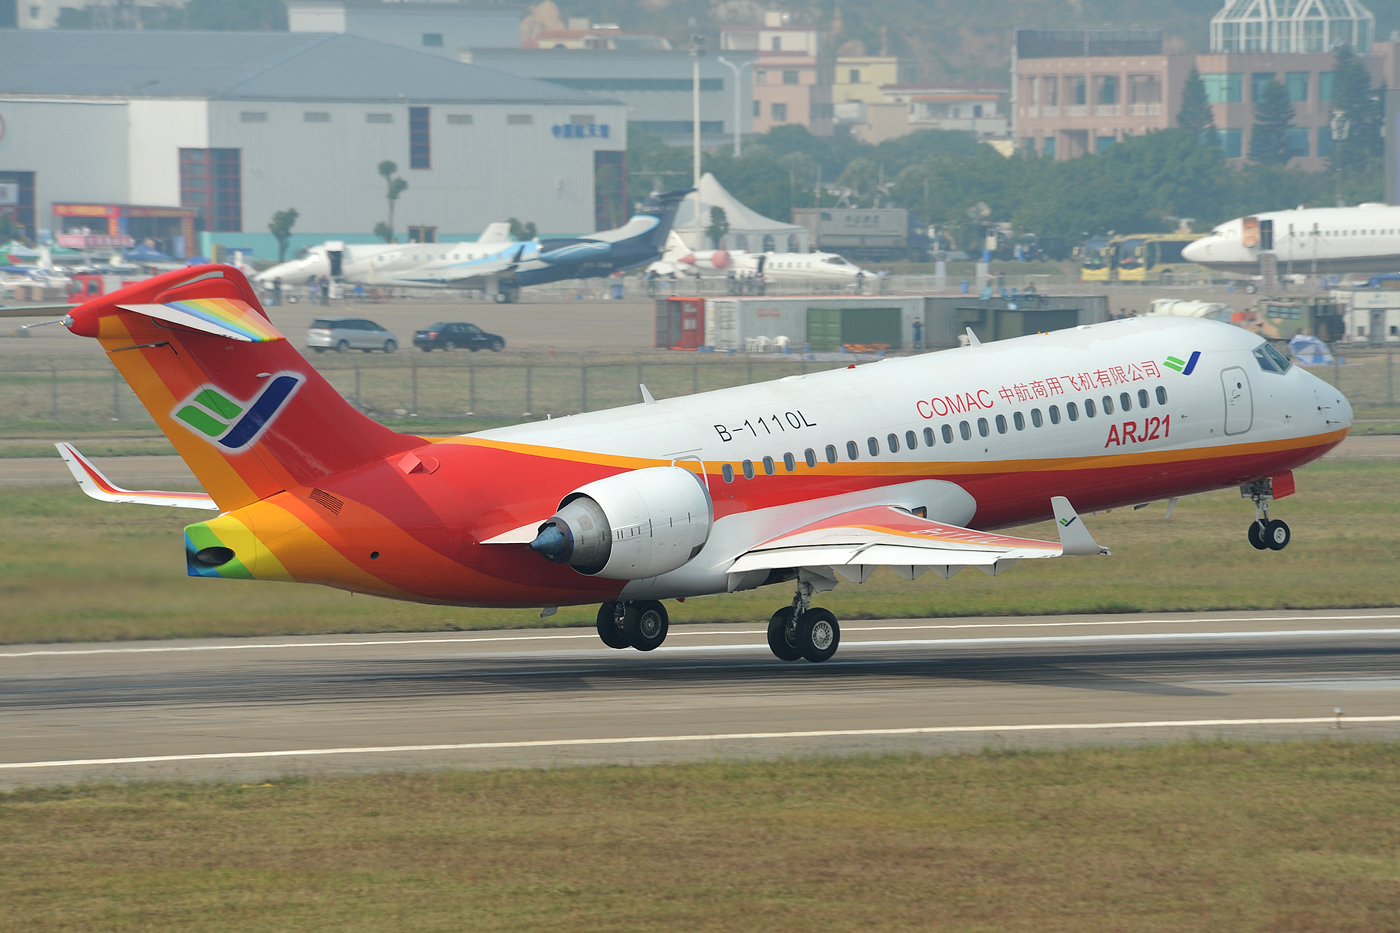 Comac ARJ21 Xiangfeng,  twin-engined regional jet, manufactured by Comac.  Dura-Ace via flickr